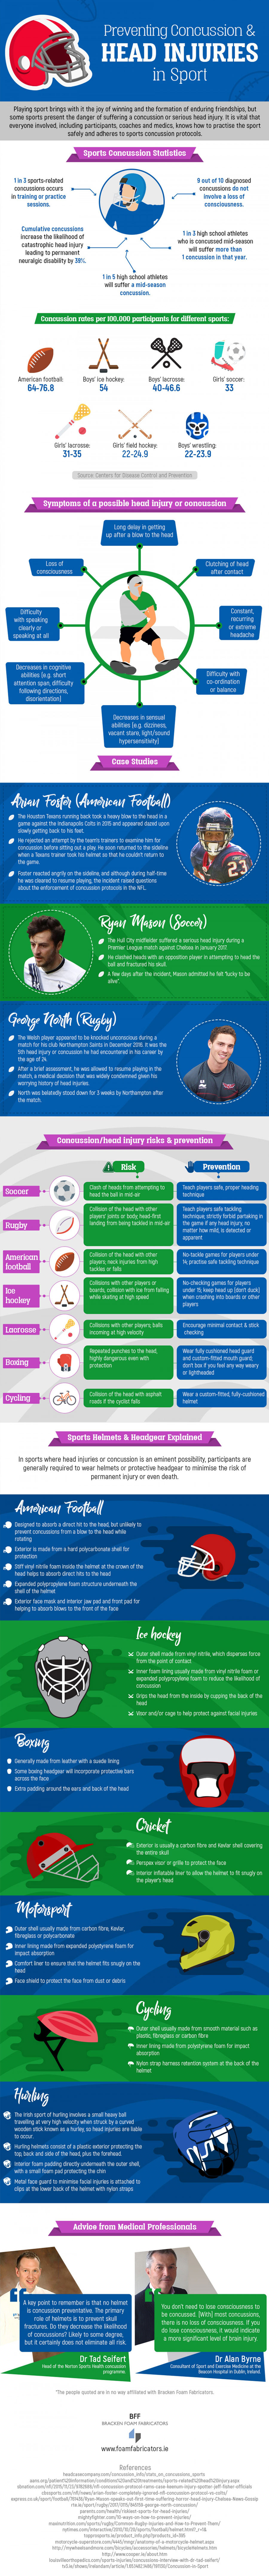 preventing-concussion-head-injuries-in-sport-inner